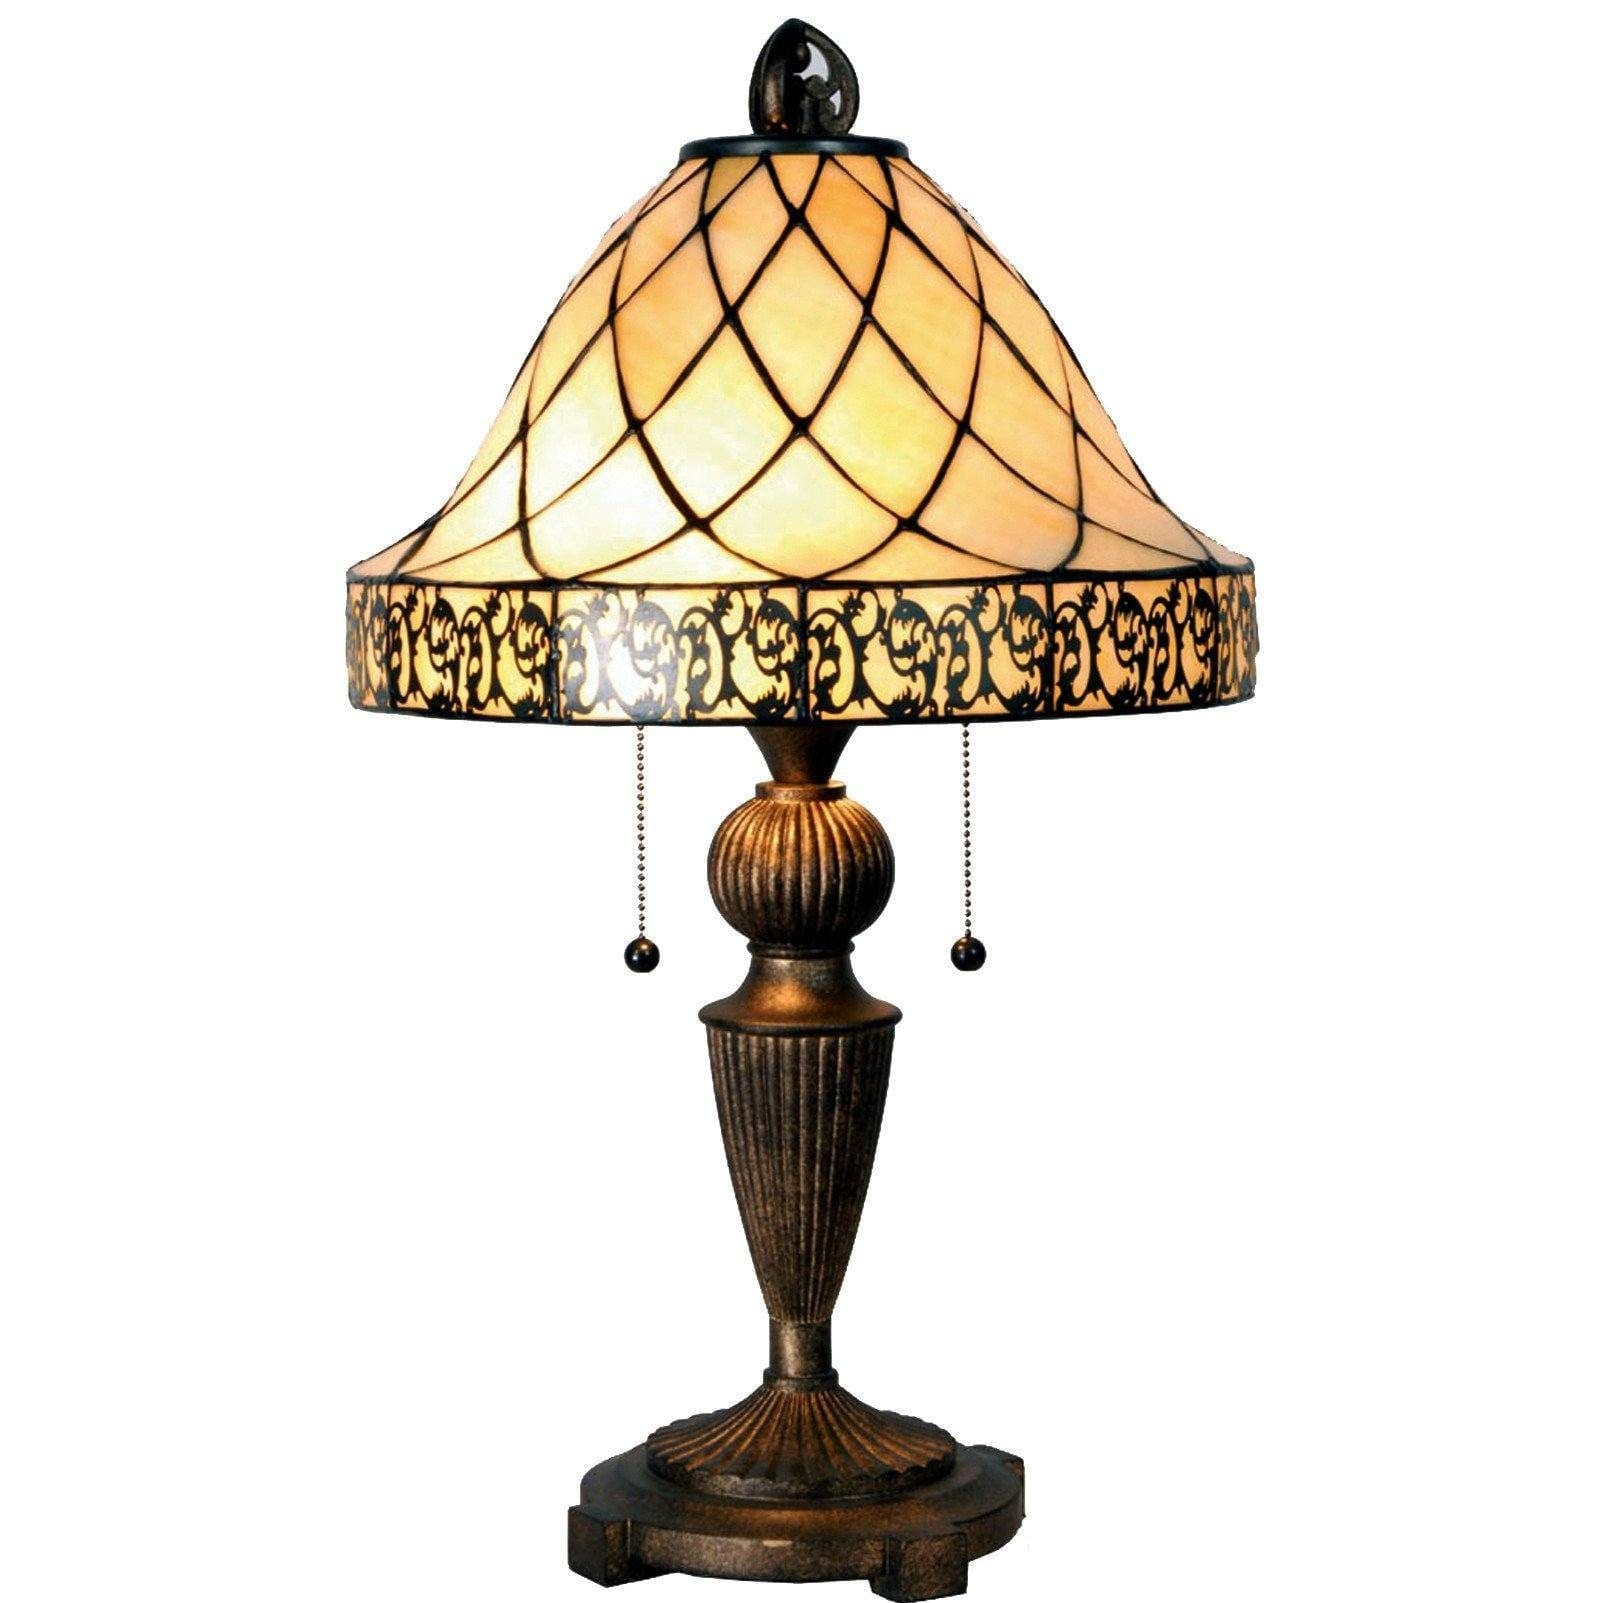 Cambridge tiffany table lamp 5ll 5408 aloadofball Image collections